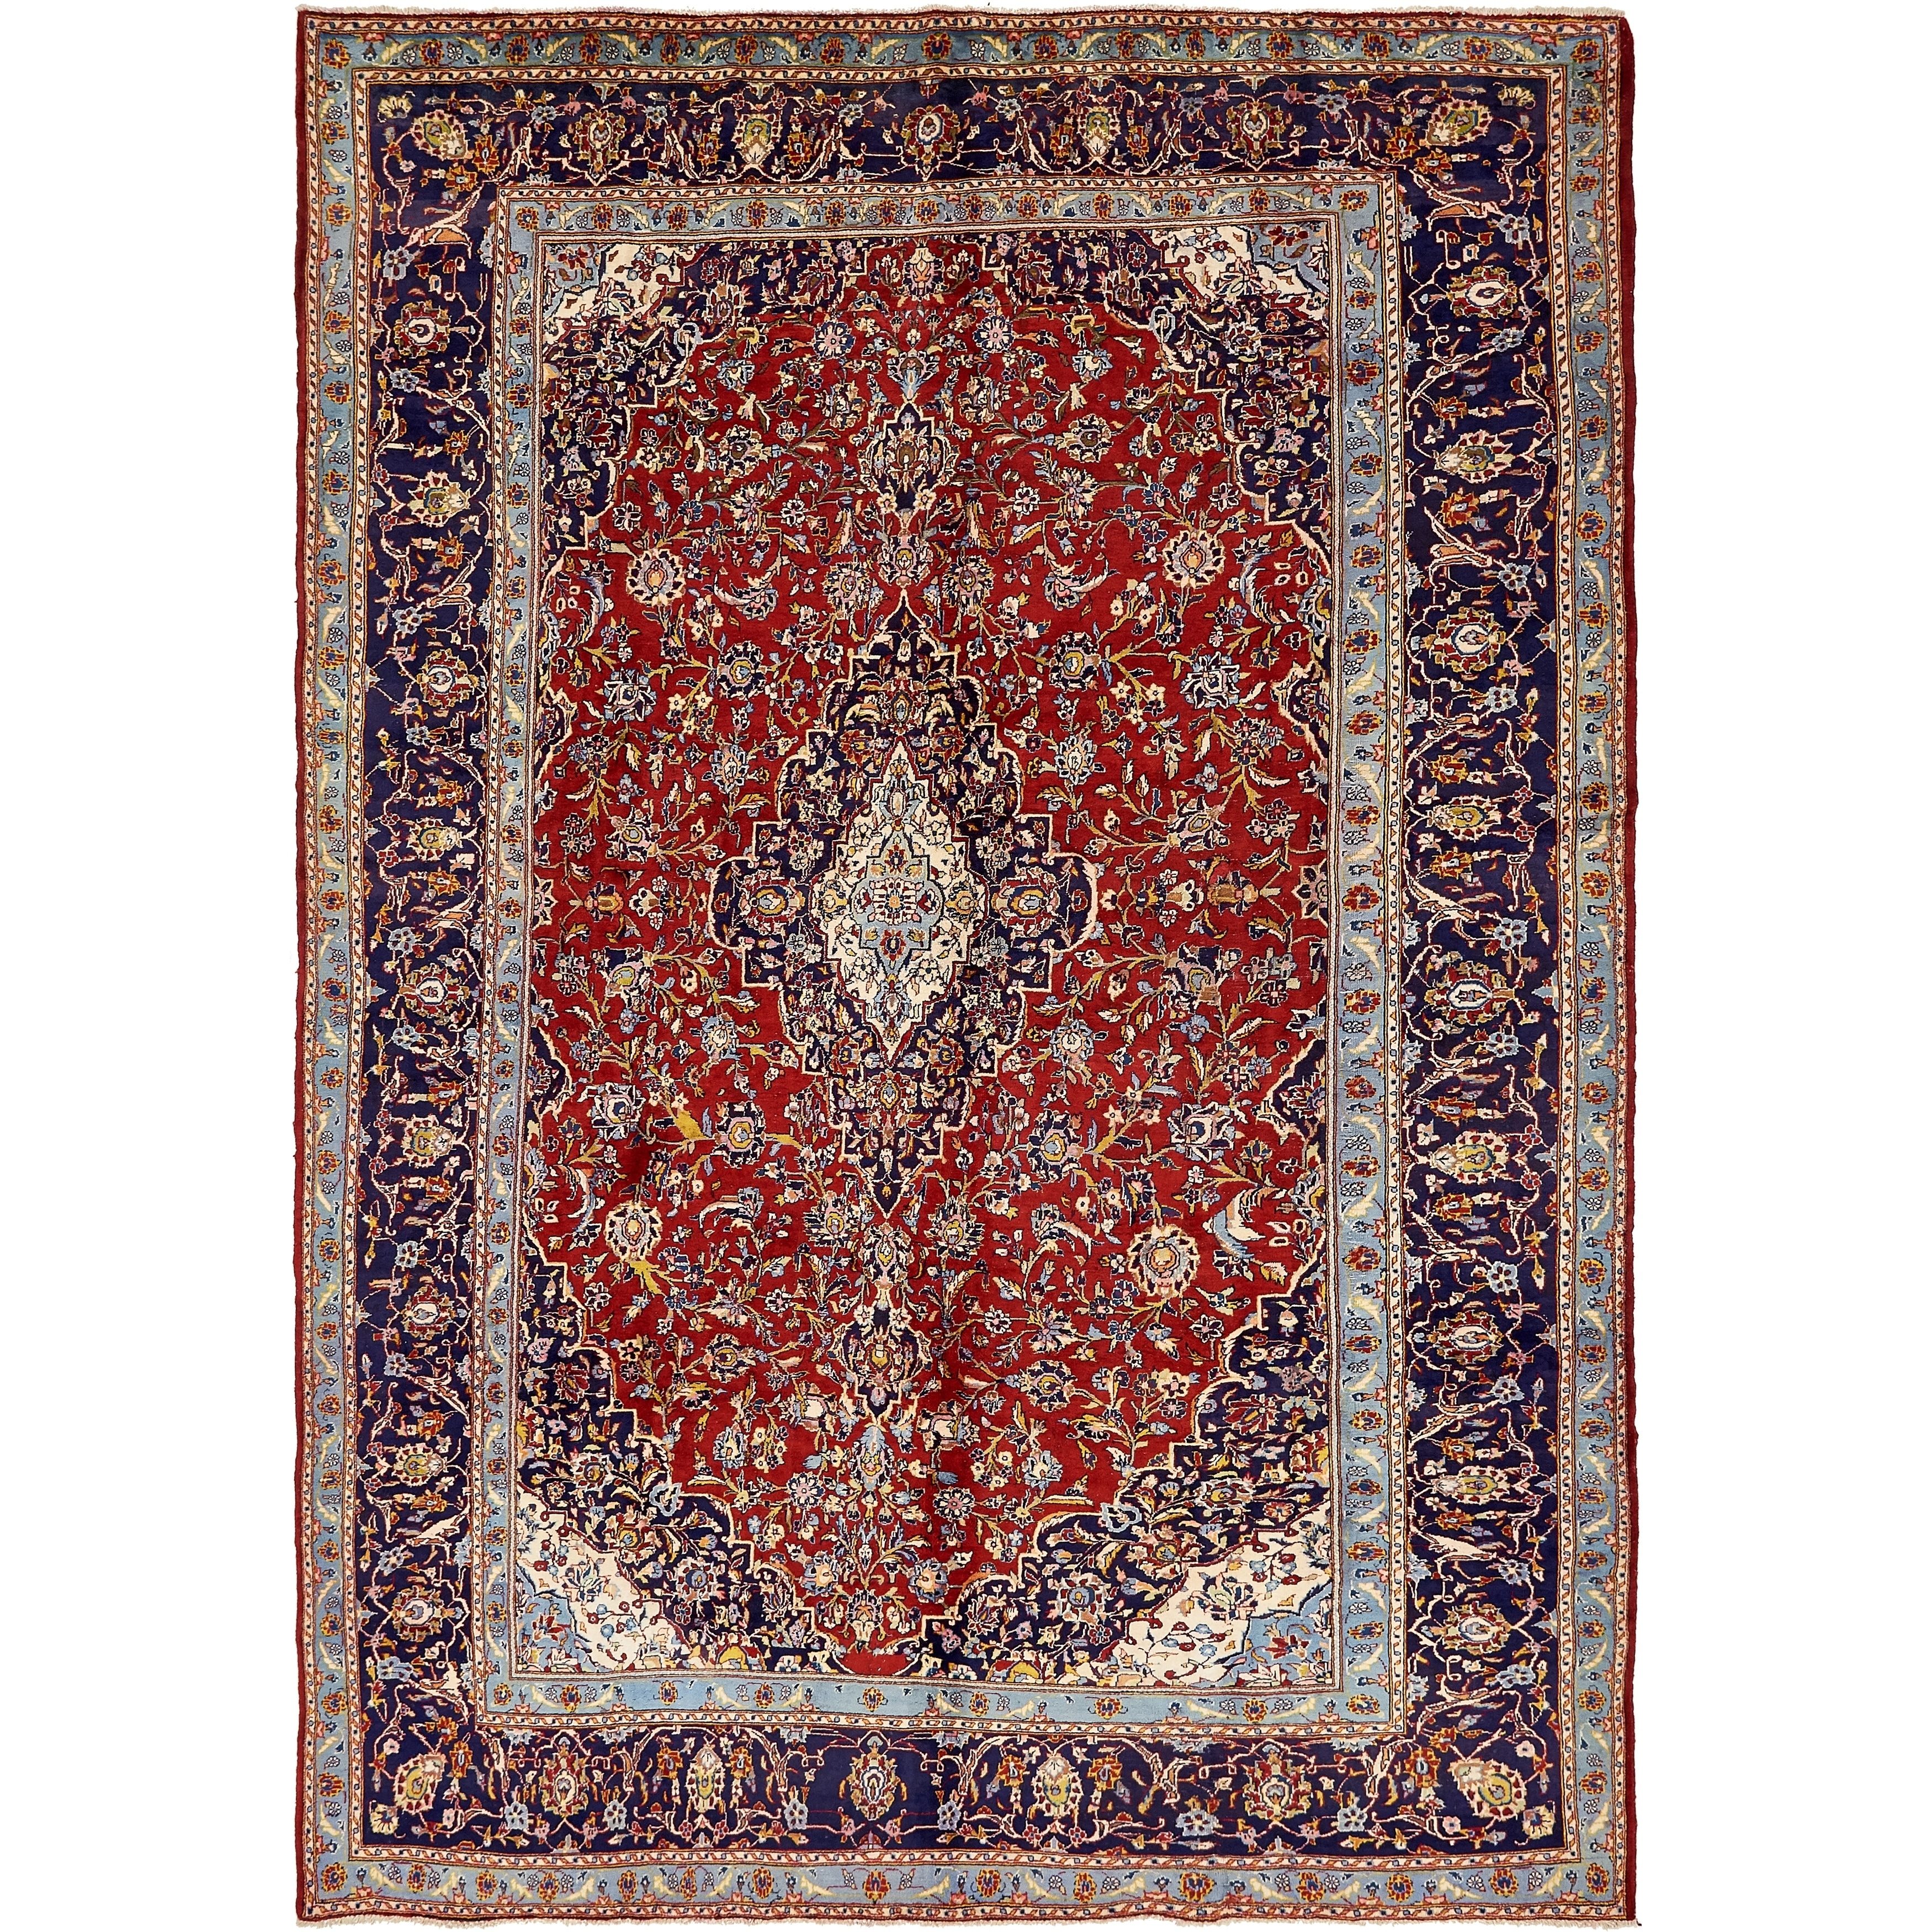 Hand Knotted Kashan Semi Antique Wool Area Rug - 9 4 x 13 3 (Red - 9 4 x 13 3)